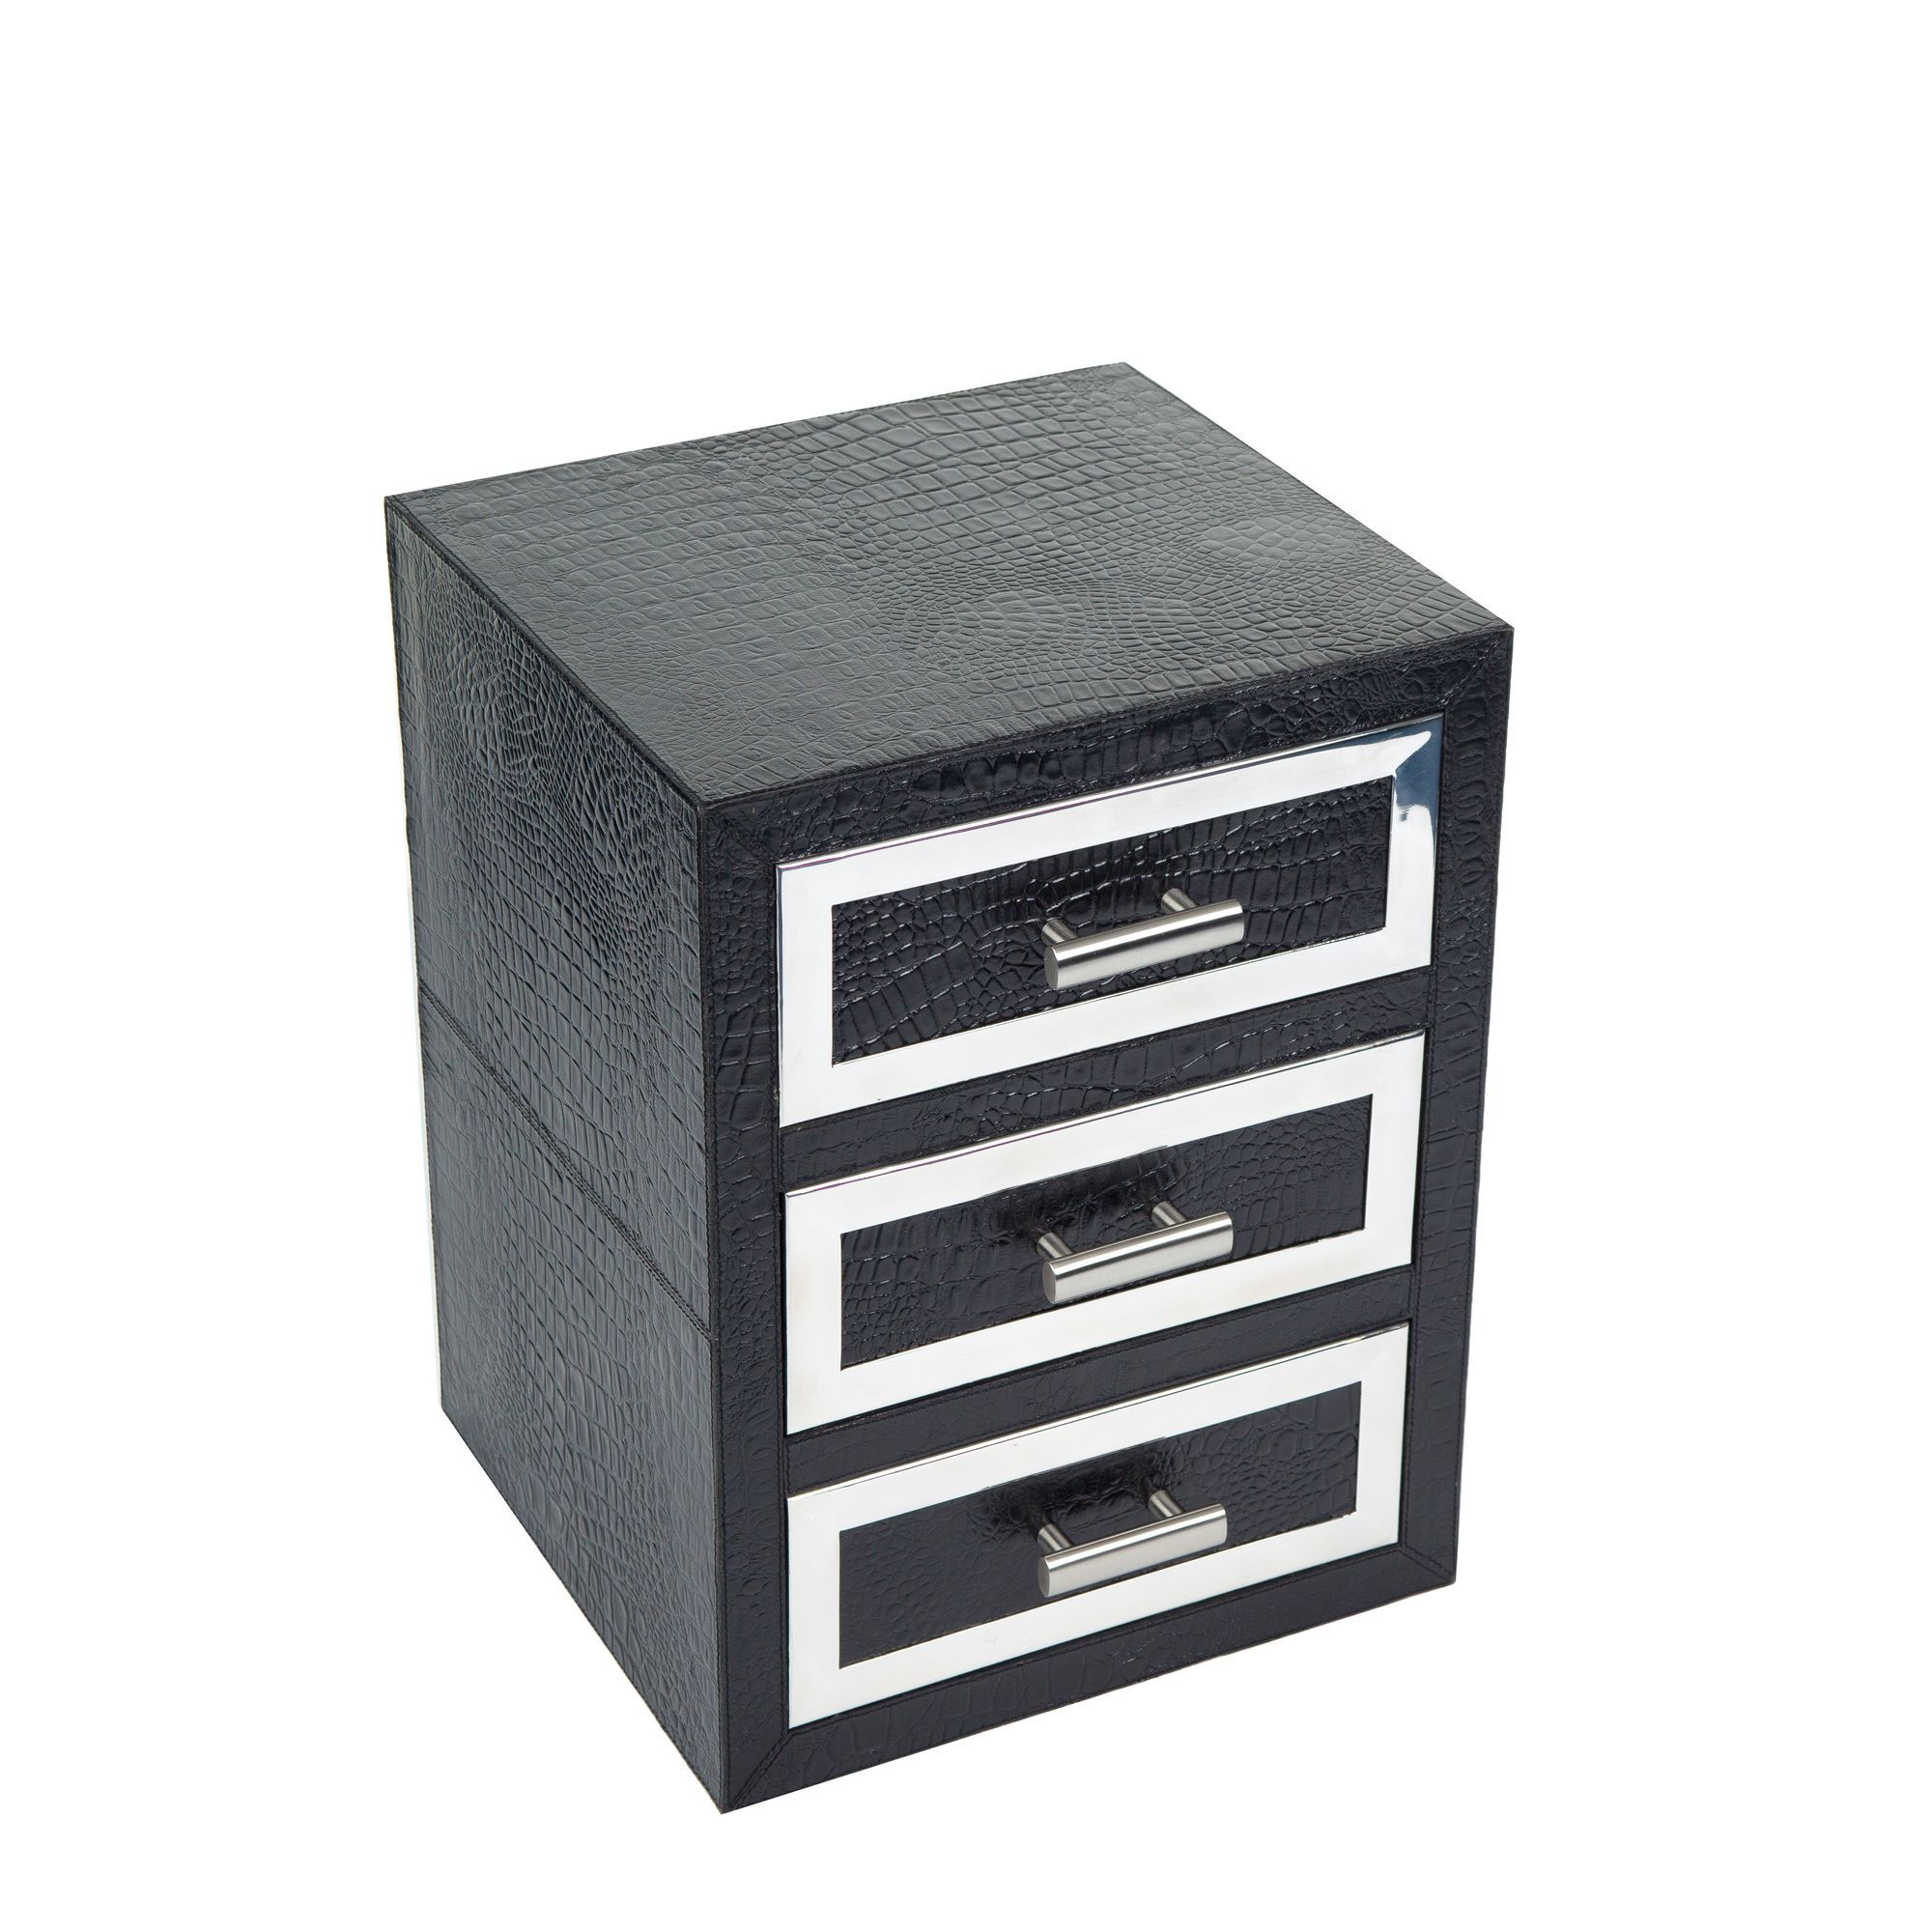 Jadeed Interiors Moc Croc Leather / Steel Drawer Set - Black at Tesco Direct